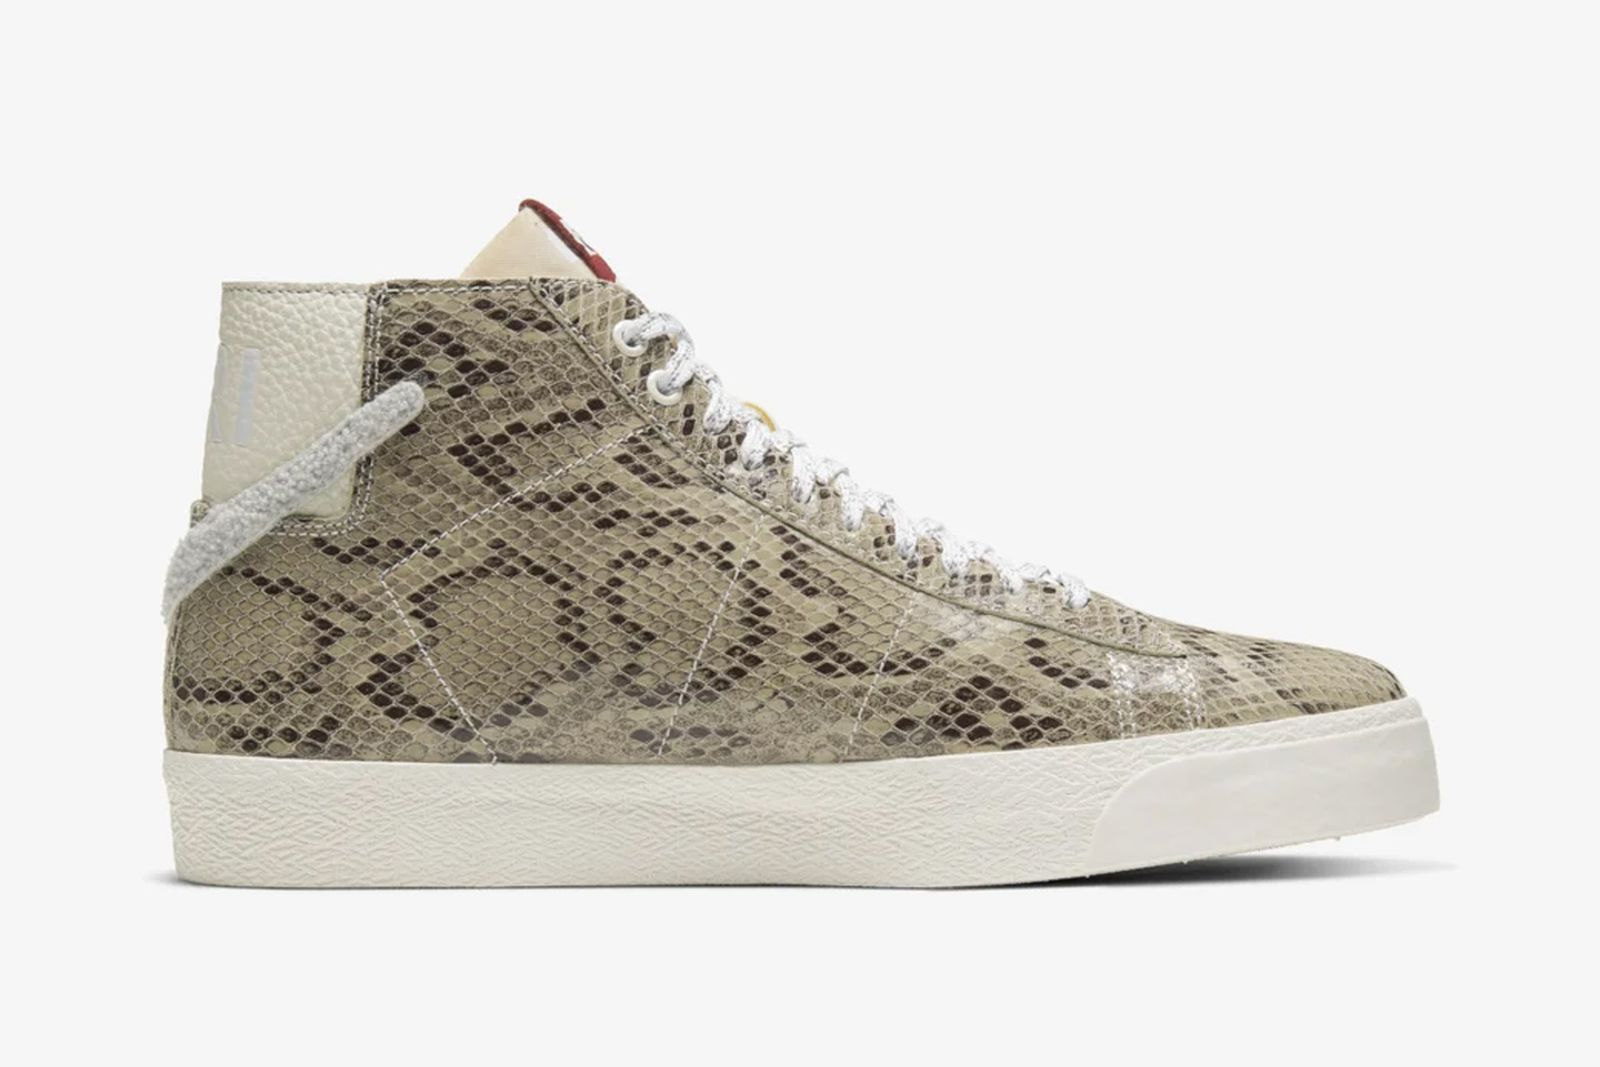 soulland-nike-blazer-mid-release-date-price-product-03